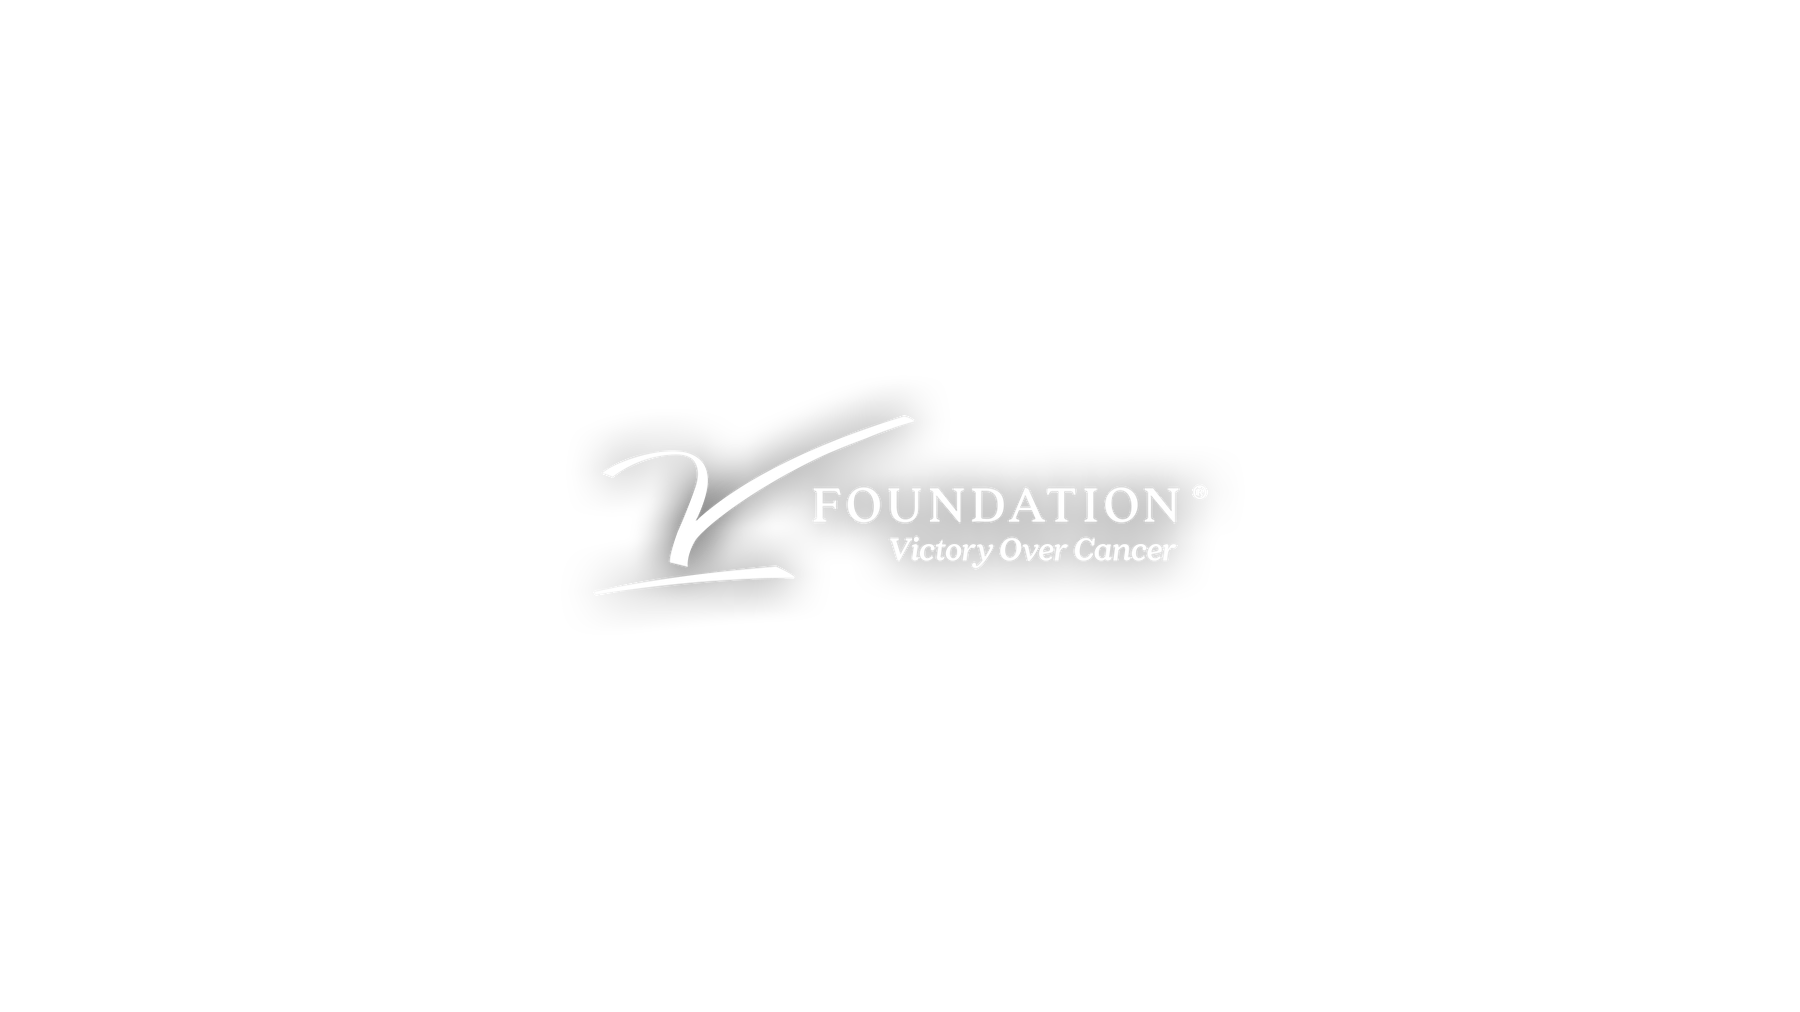 V foundation logo center